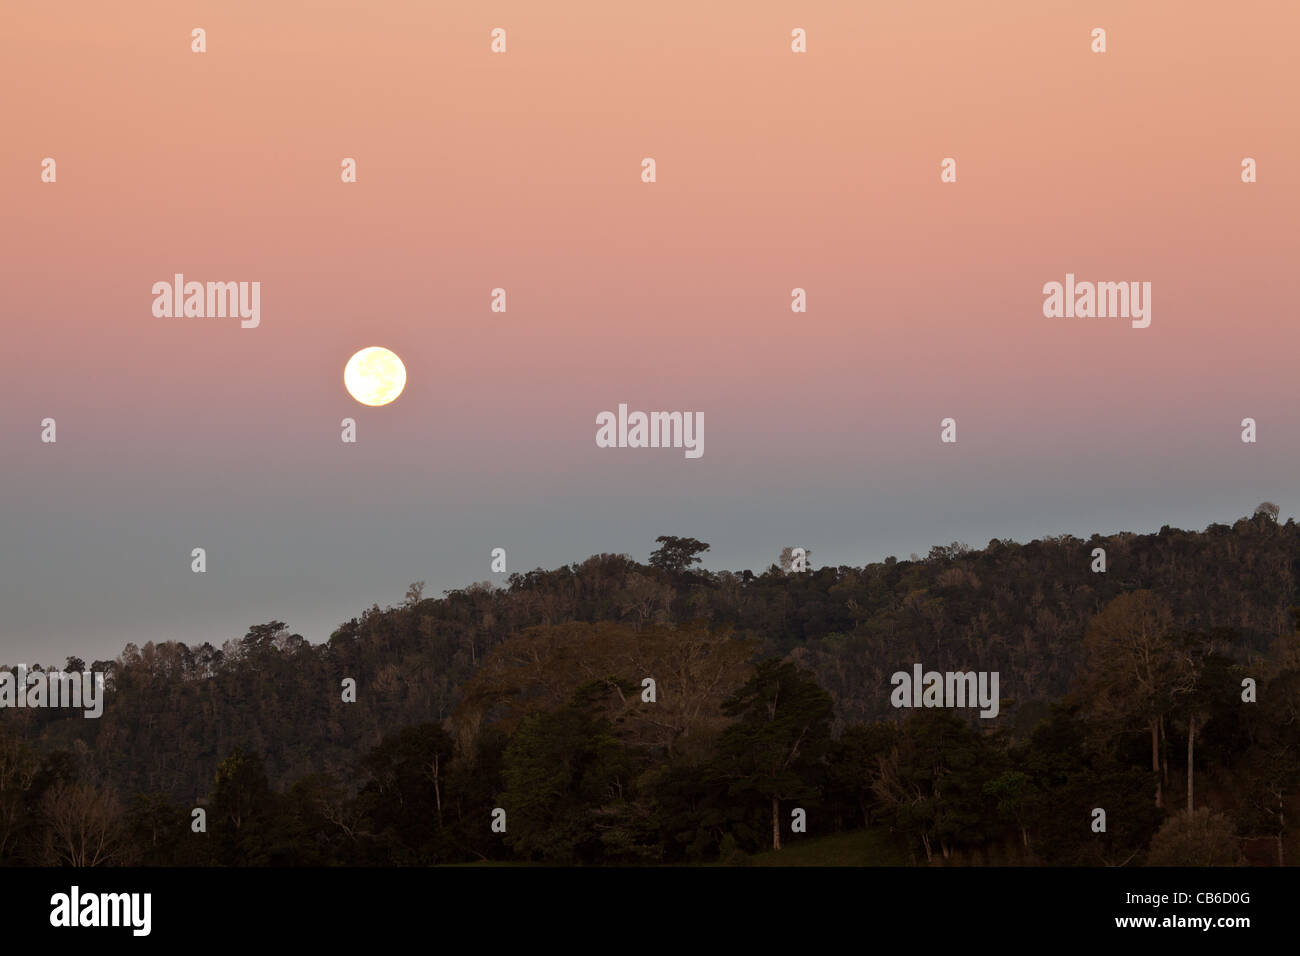 Moon and colorful skies before daybreak near the border of La Amistad national park, Chiriqui province, Republic - Stock Image